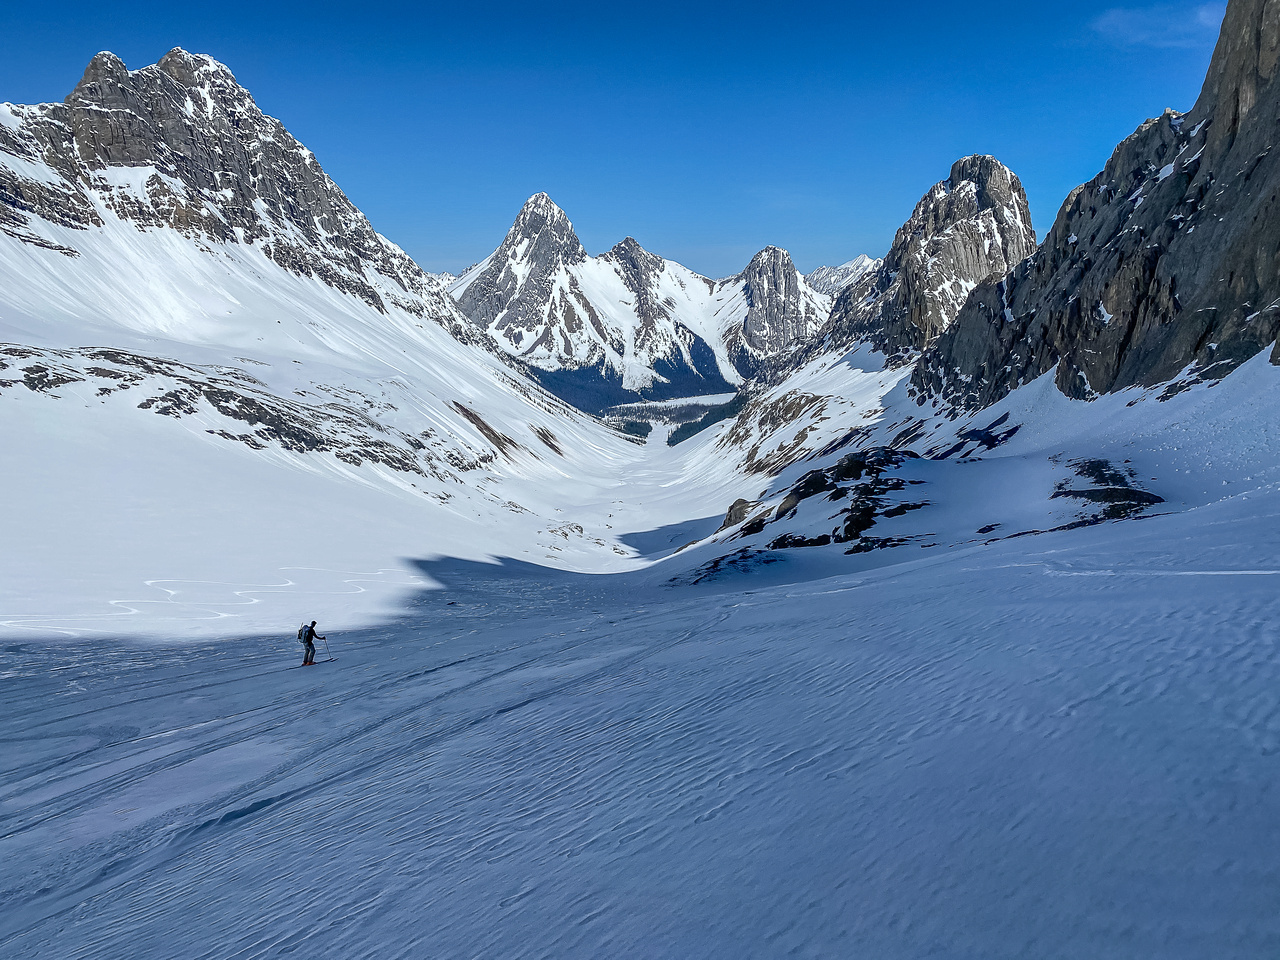 Skiing down the Robertson Glacier on a mix of good and terrible Spring snow.